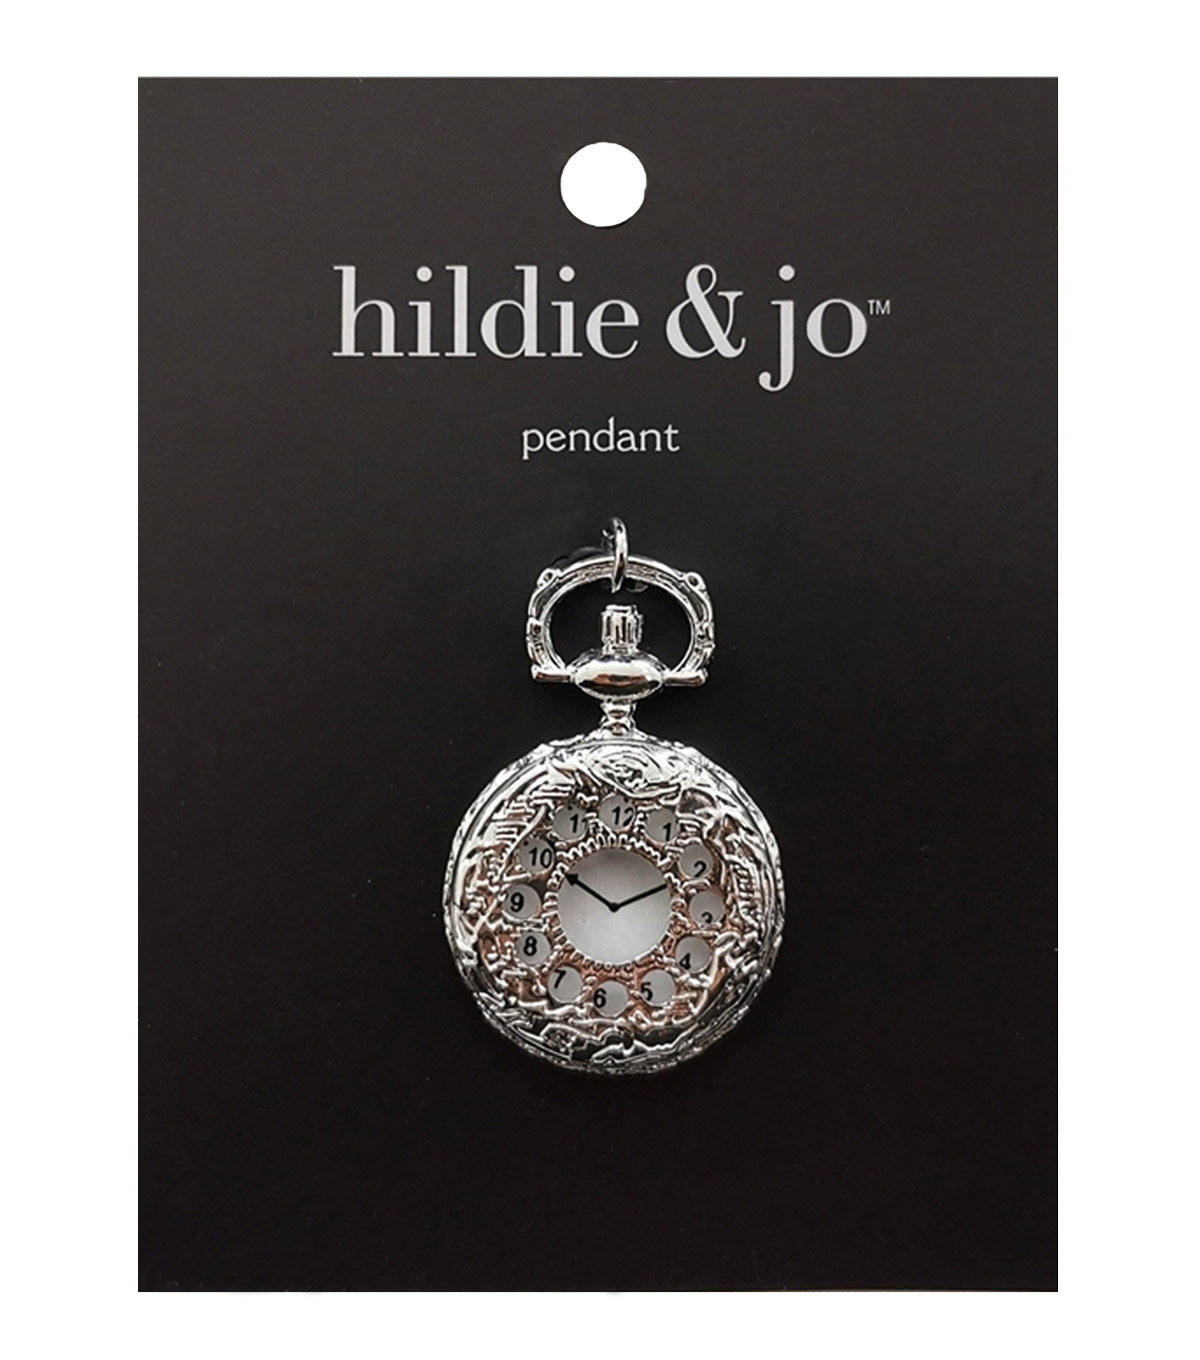 hildie & jo™ Antiquist Pocket Watch Antique Silver Pendant